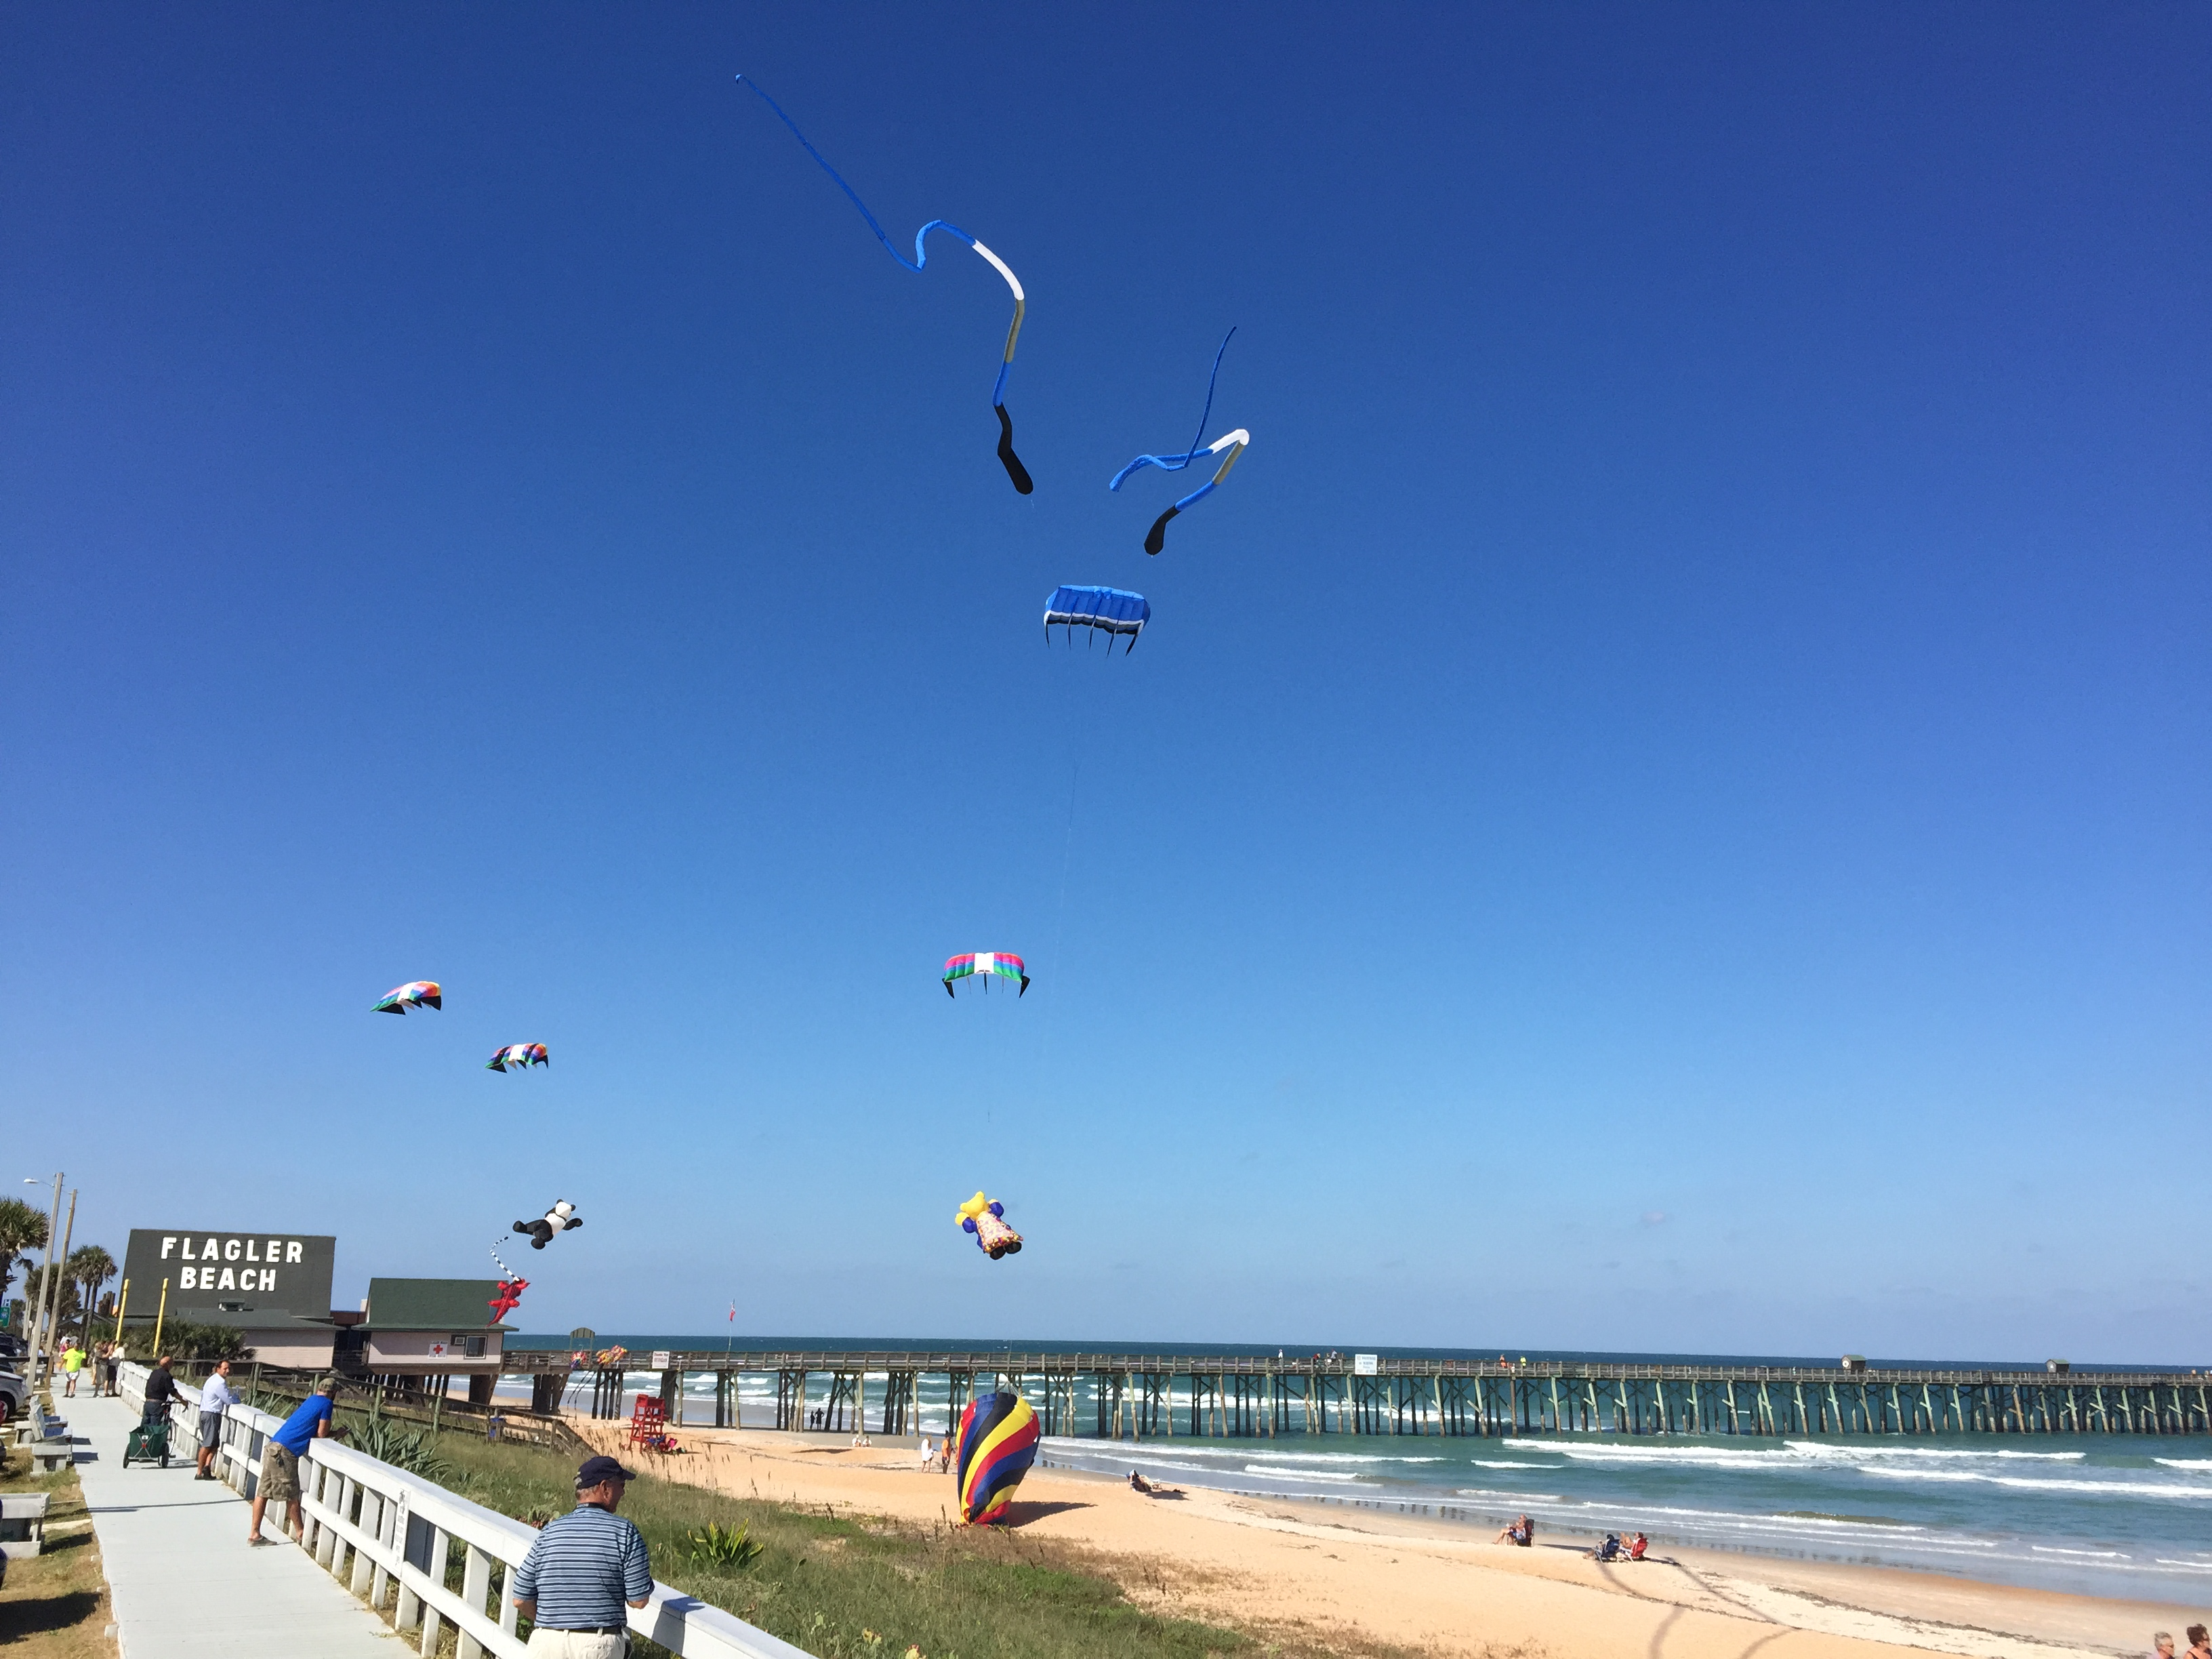 Flagler Beach Kites